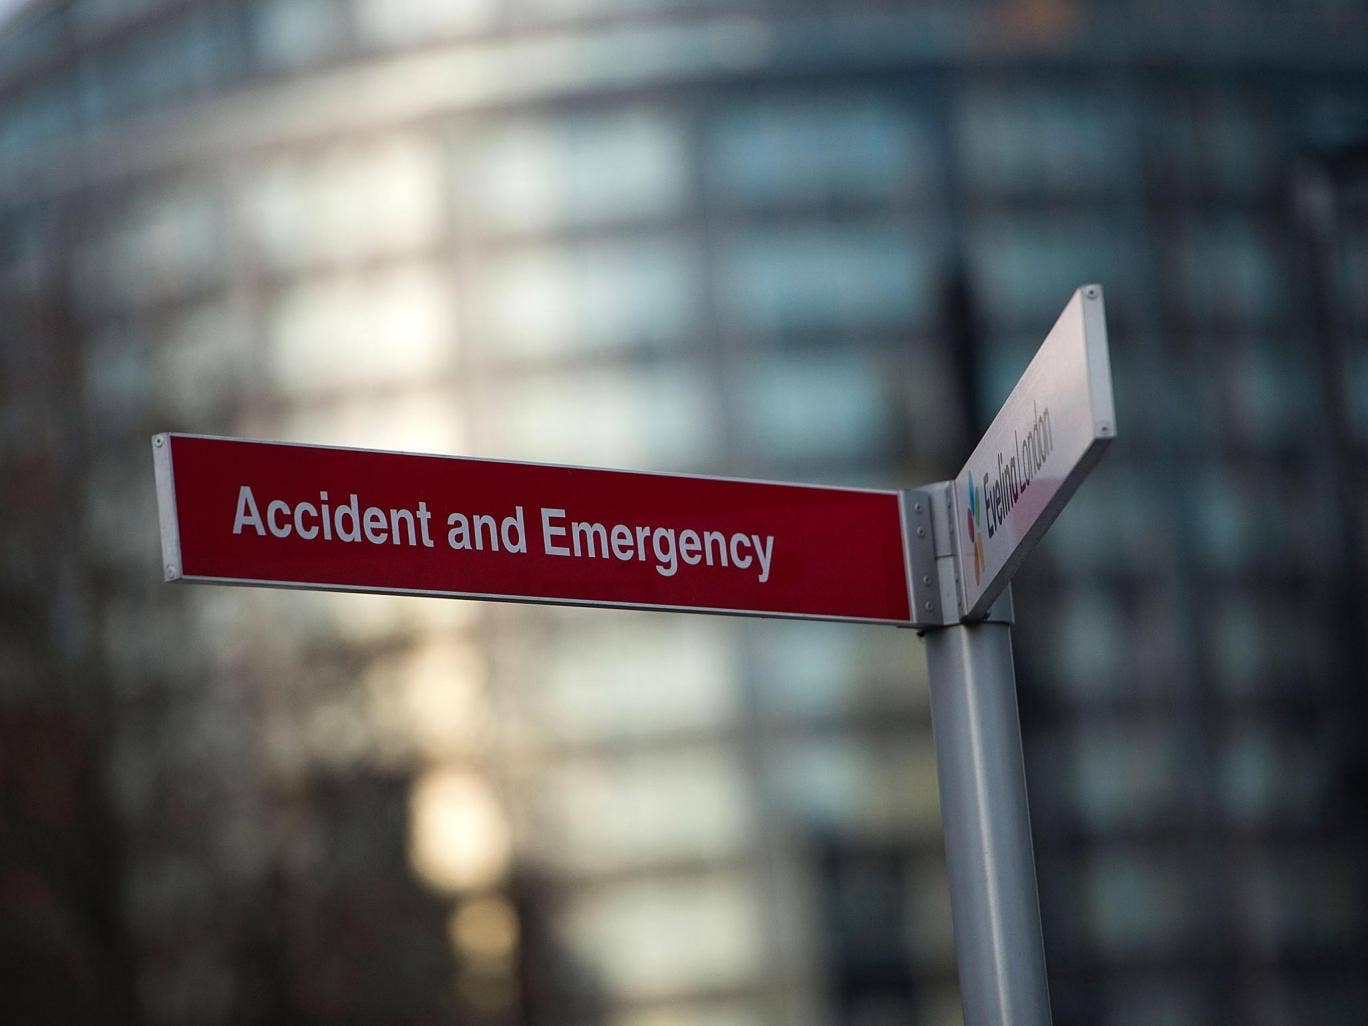 Admissions to hospitals from major A&Es are nearly five per cent higher than at the same time last year